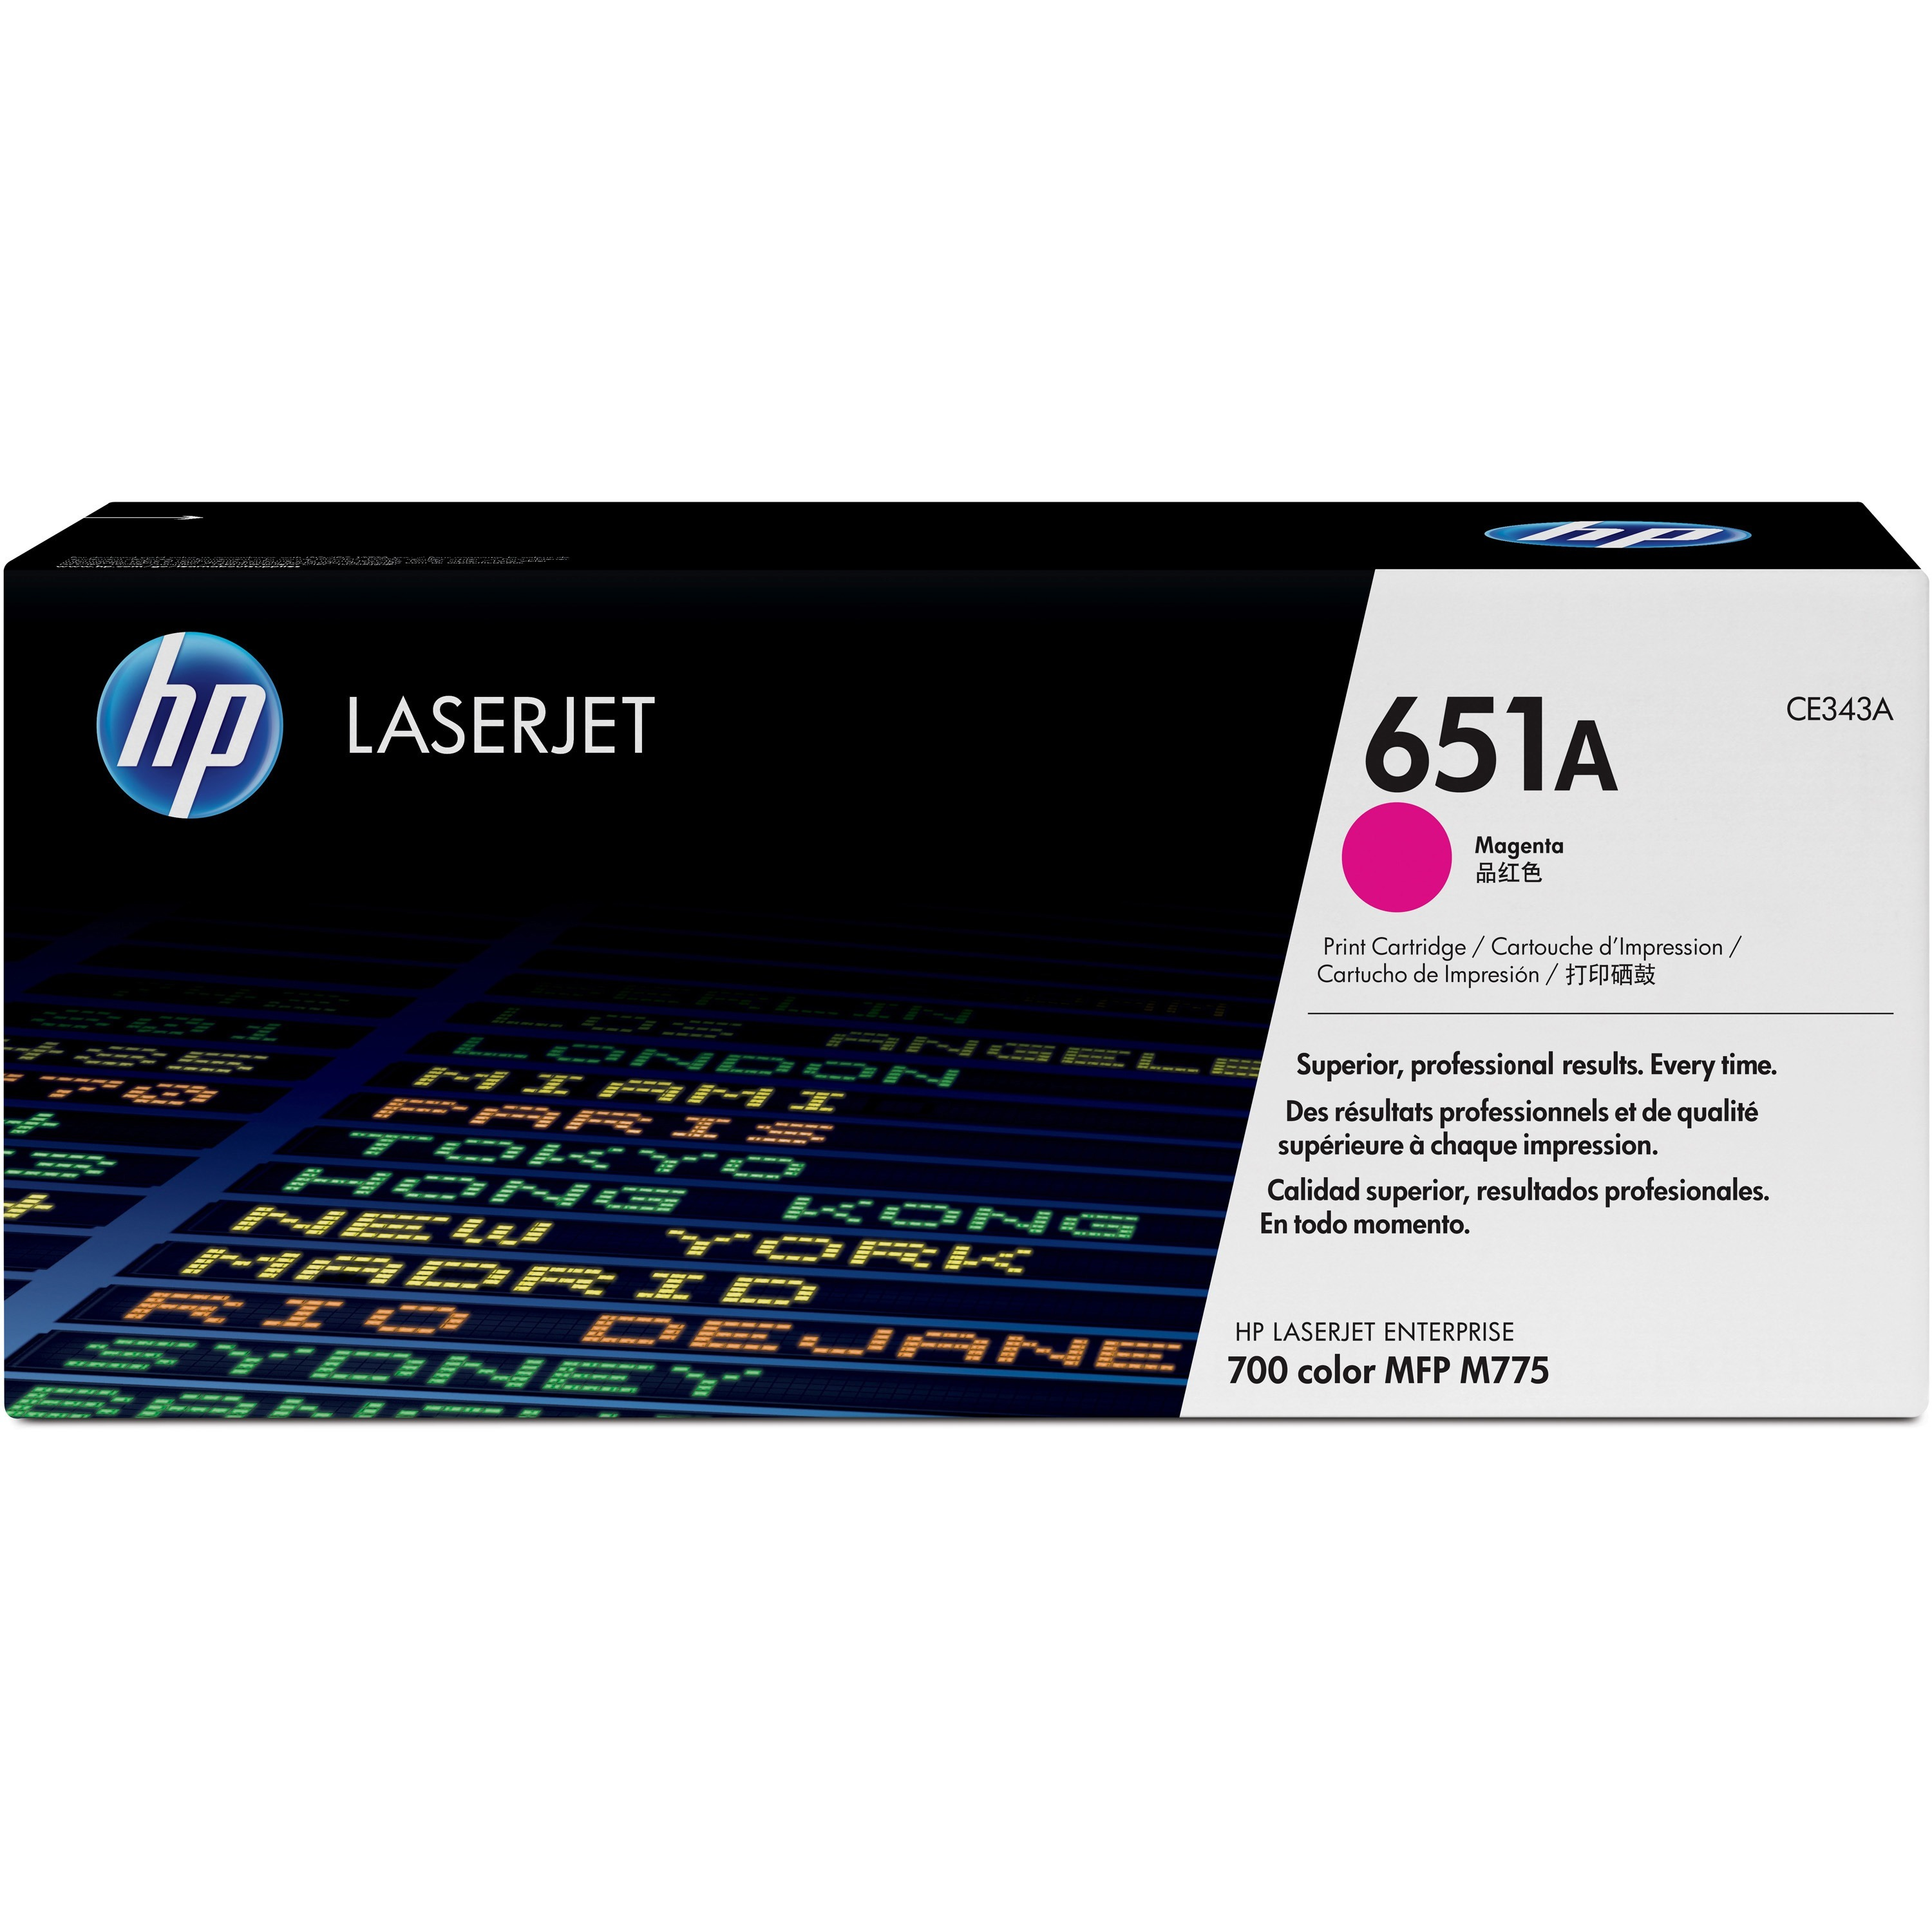 HP 651A Toner Cartridge - Magenta